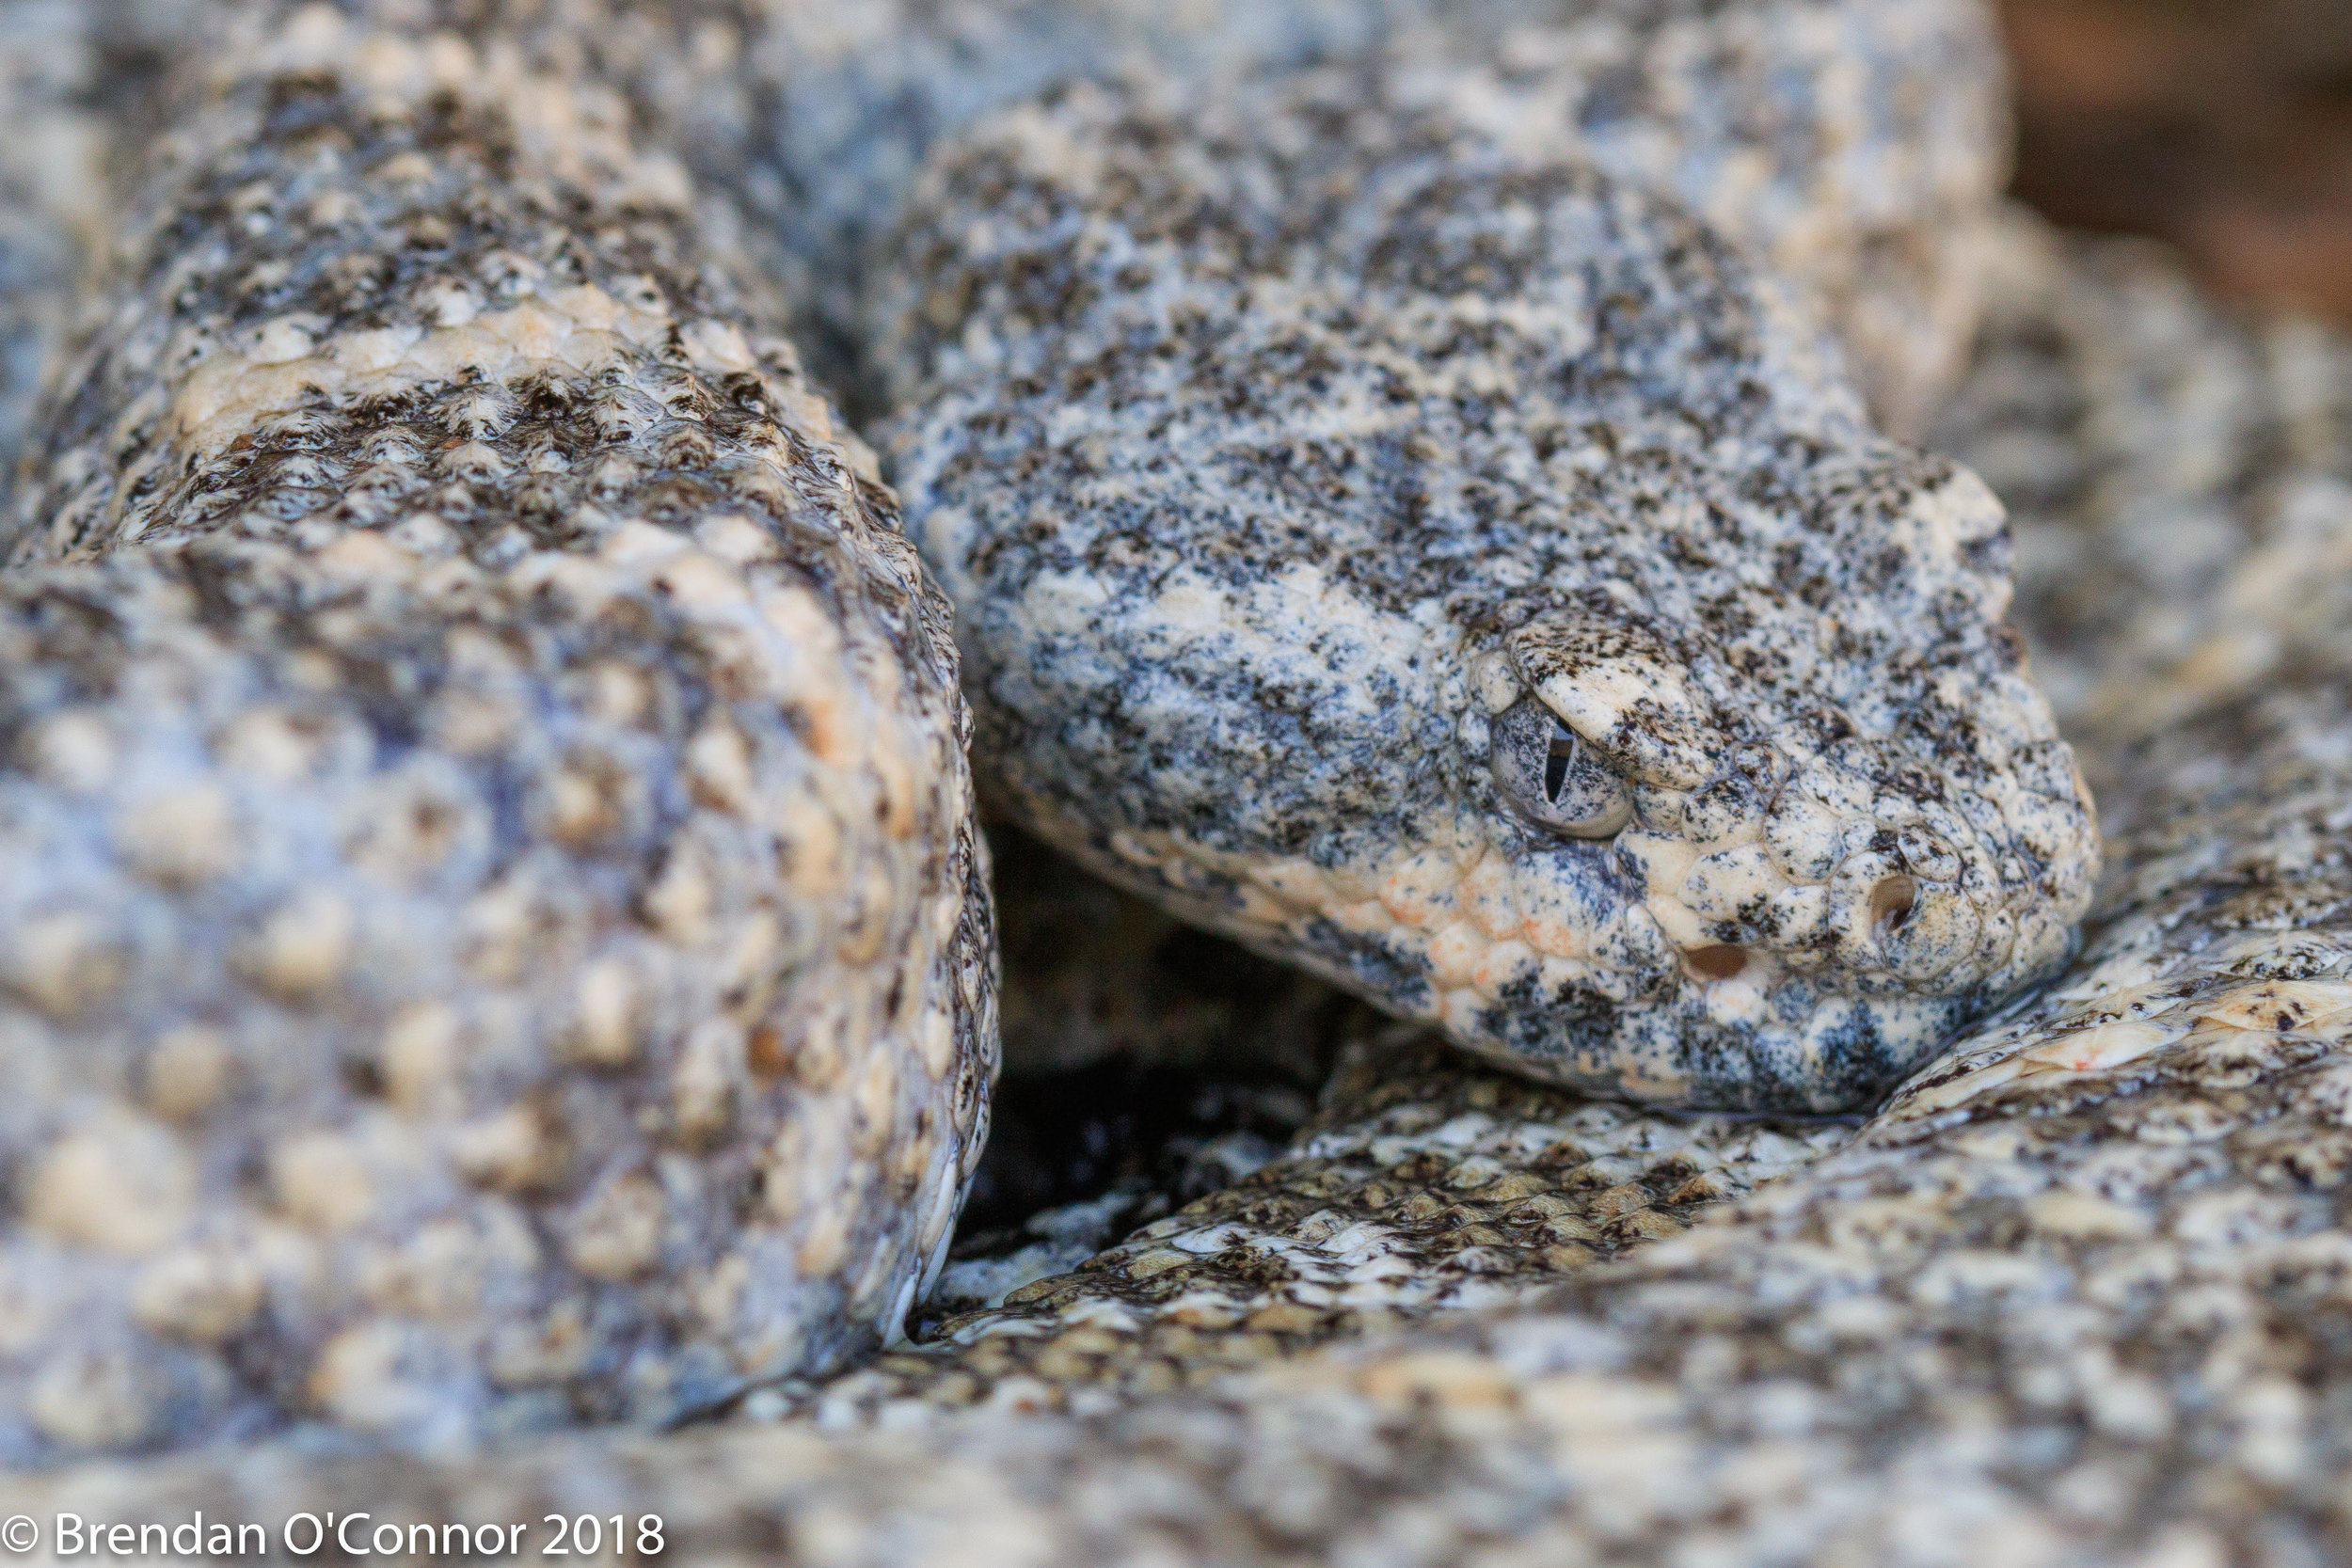 Speckled Rattlesnake (Crotalus pyrrhus) drinking water from its scales.